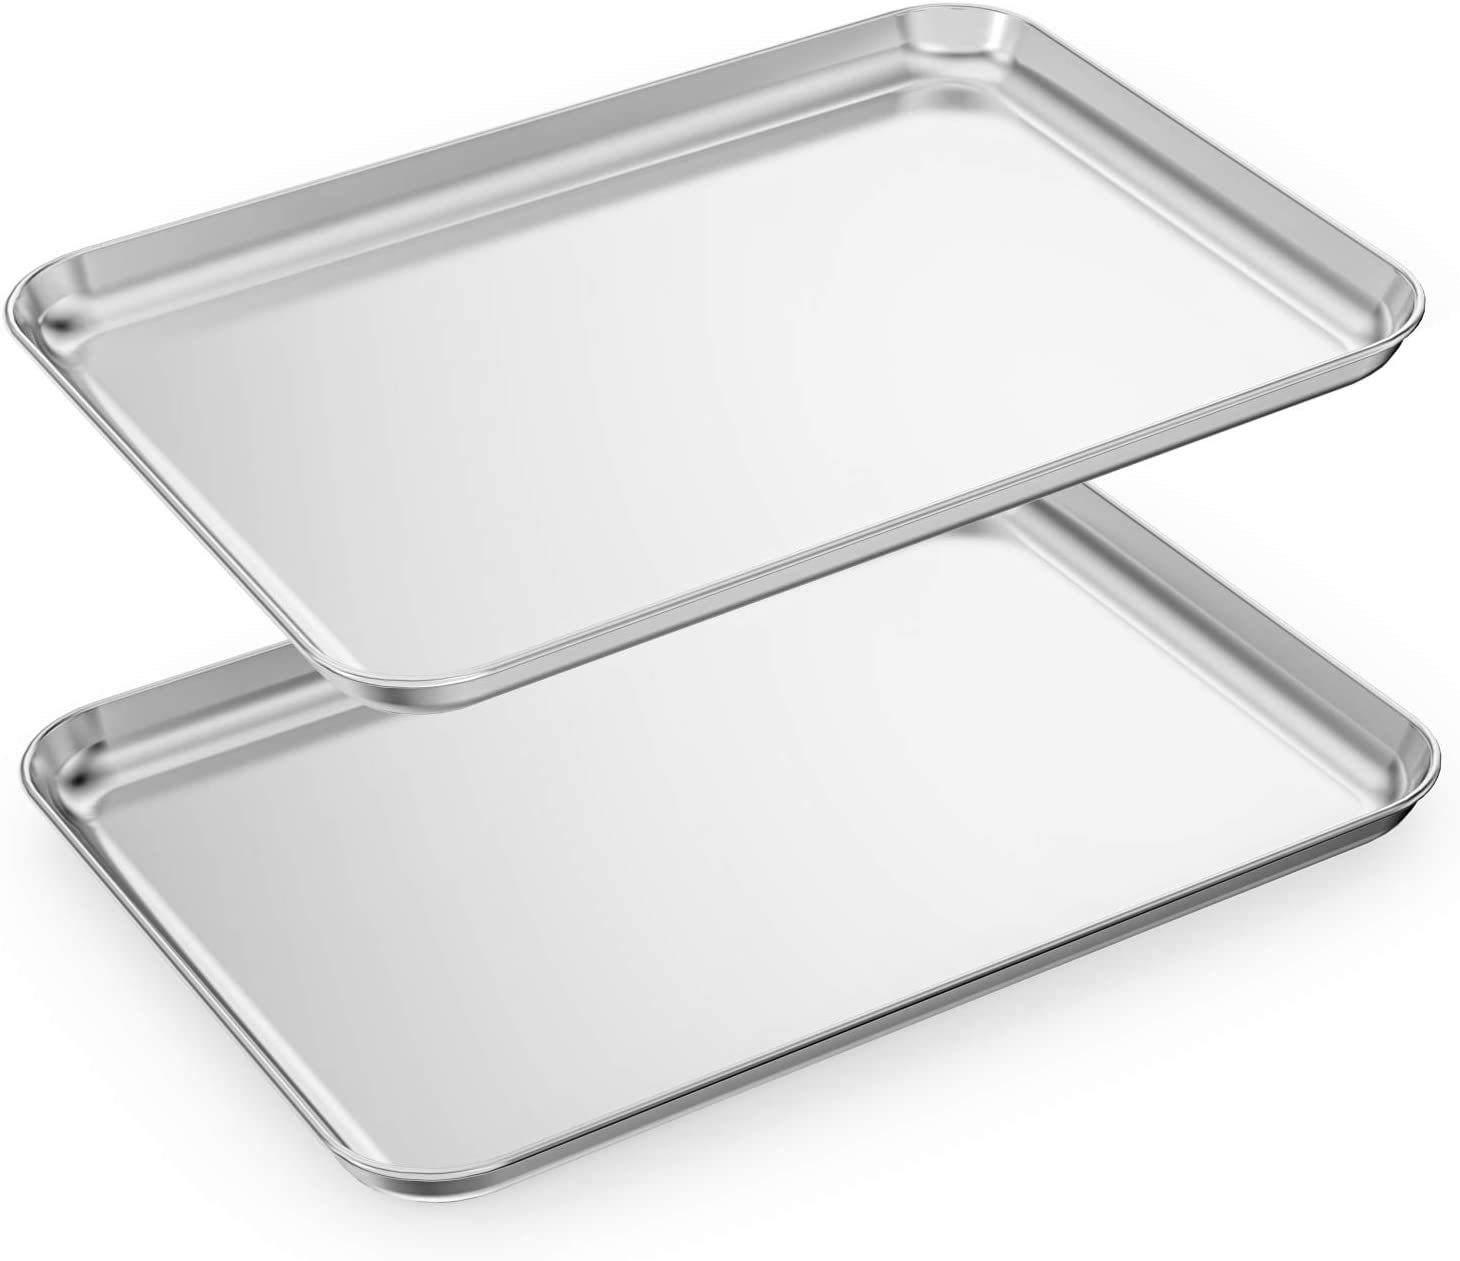 Baking Sheets Set of 2, HKJ Chef Cookie Sheets 2 Pieces & Stainless Steel Baking Pans & Toaster Oven Tray Pans, Rectangle Size 24L x 16W x 1H inch & Non Toxic & Healthy & Easy Clean